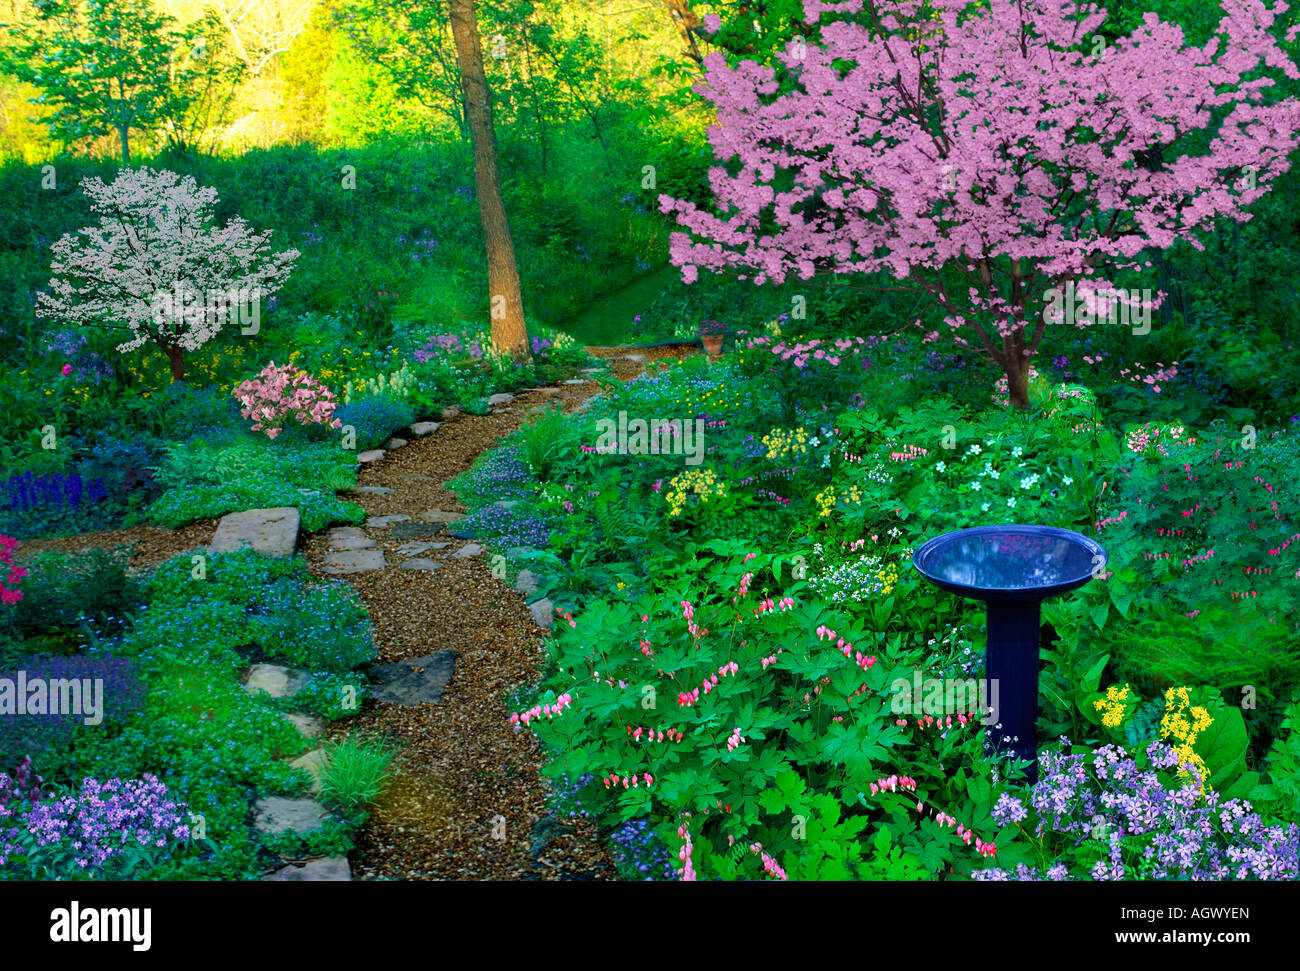 Aggregate Path Curves In Spring Shade Garden With Bird Bath And Many  Blooming Flowers And Pink And White Dogwood Trees